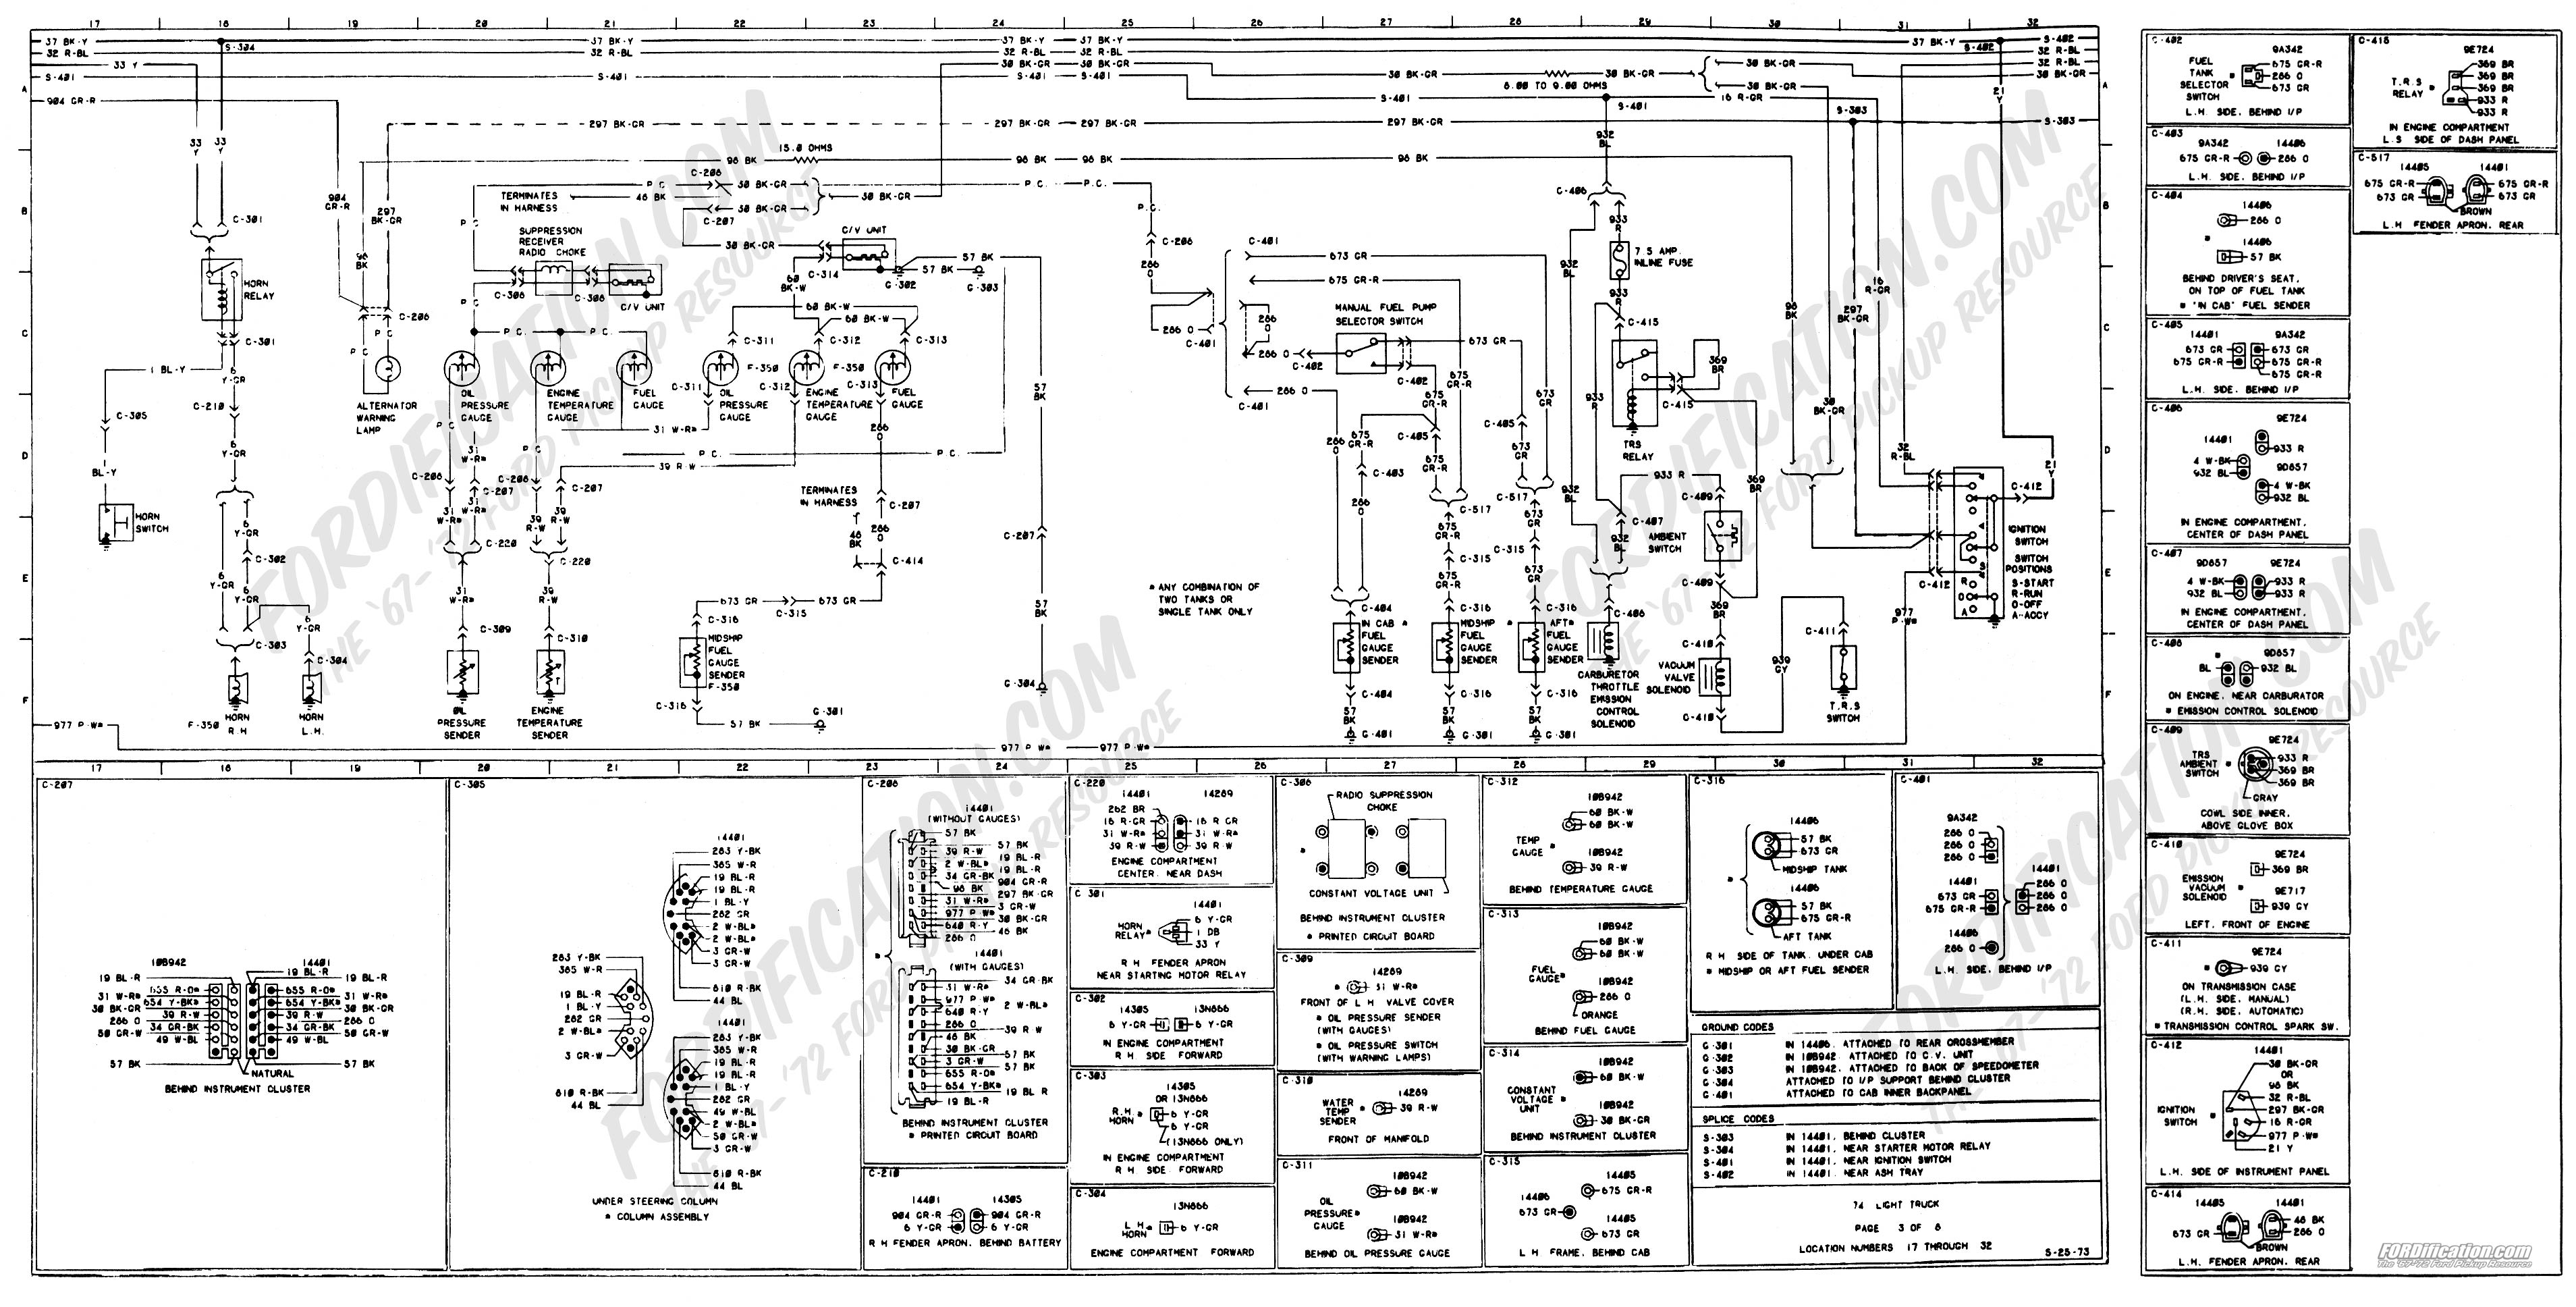 wiring_74master_3of8 1973 1979 ford truck wiring diagrams & schematics fordification net 2004 ford f250 wiring diagram at soozxer.org